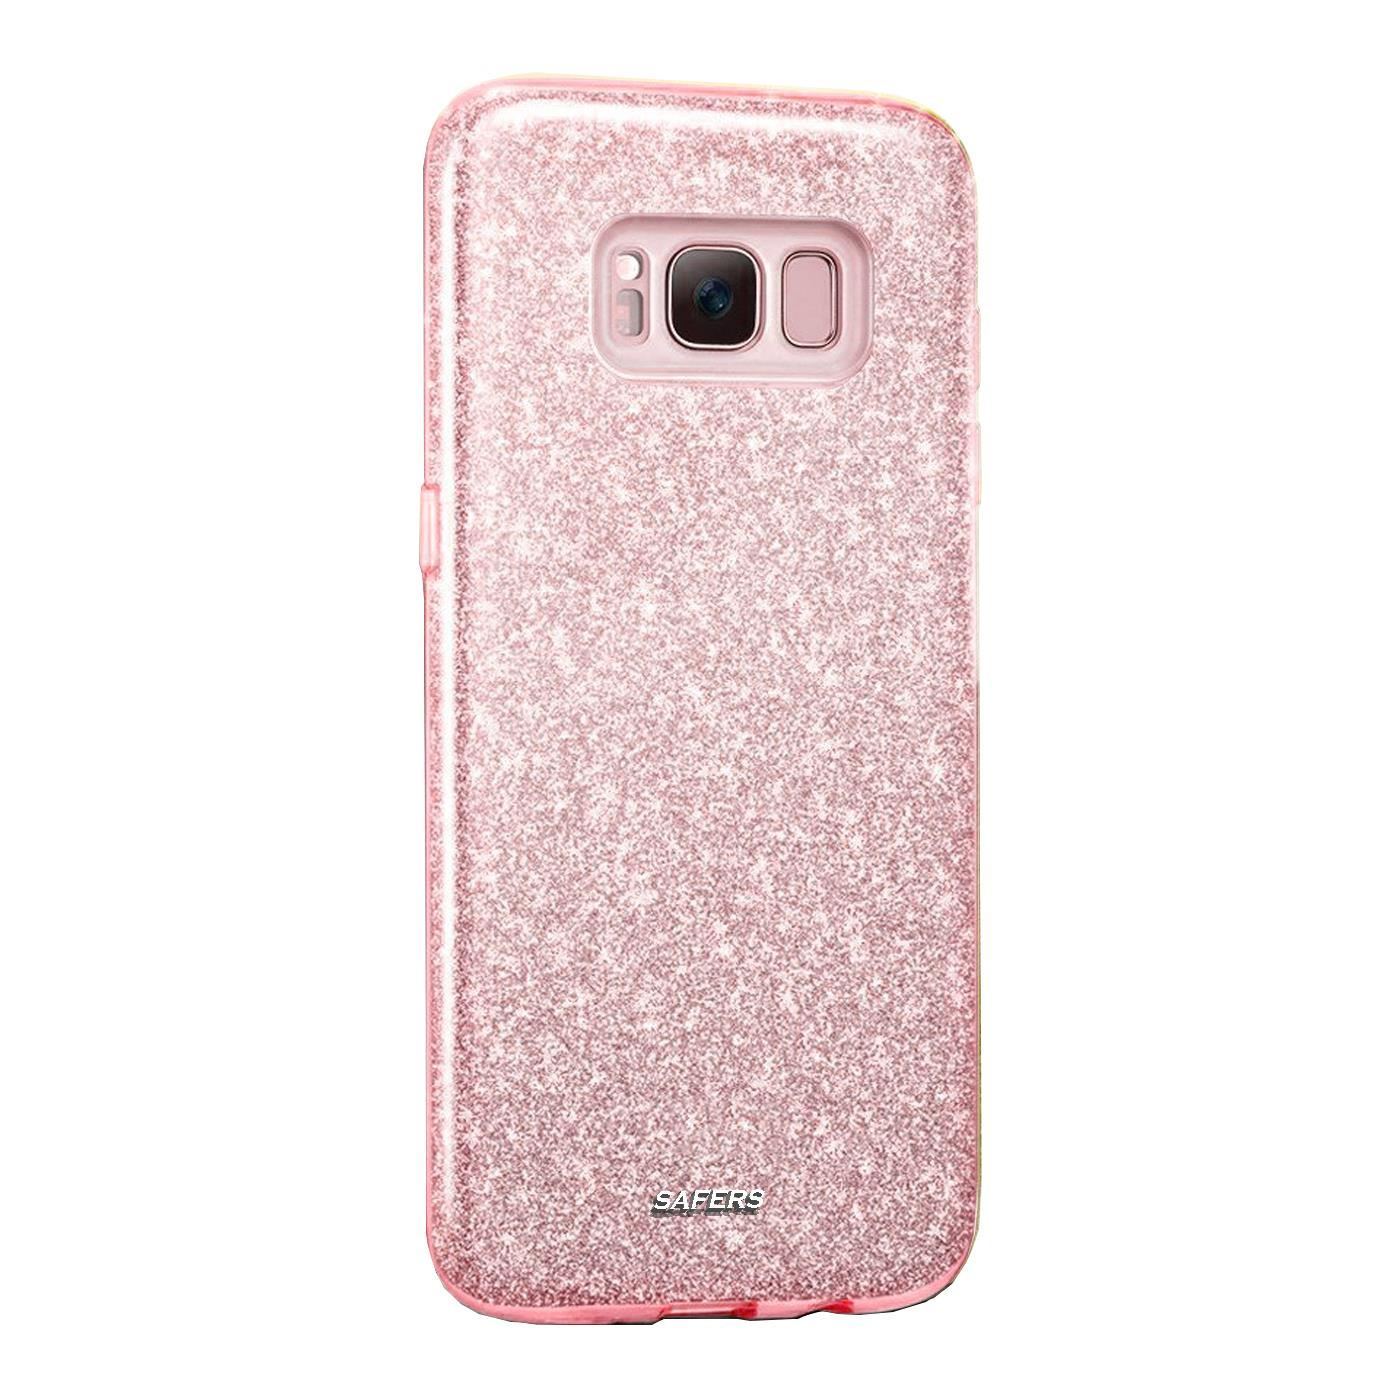 Phone-Glitter-Case-for-Samsung-Galaxy-Slim-TPU-Cover-Silicone-Protective thumbnail 12